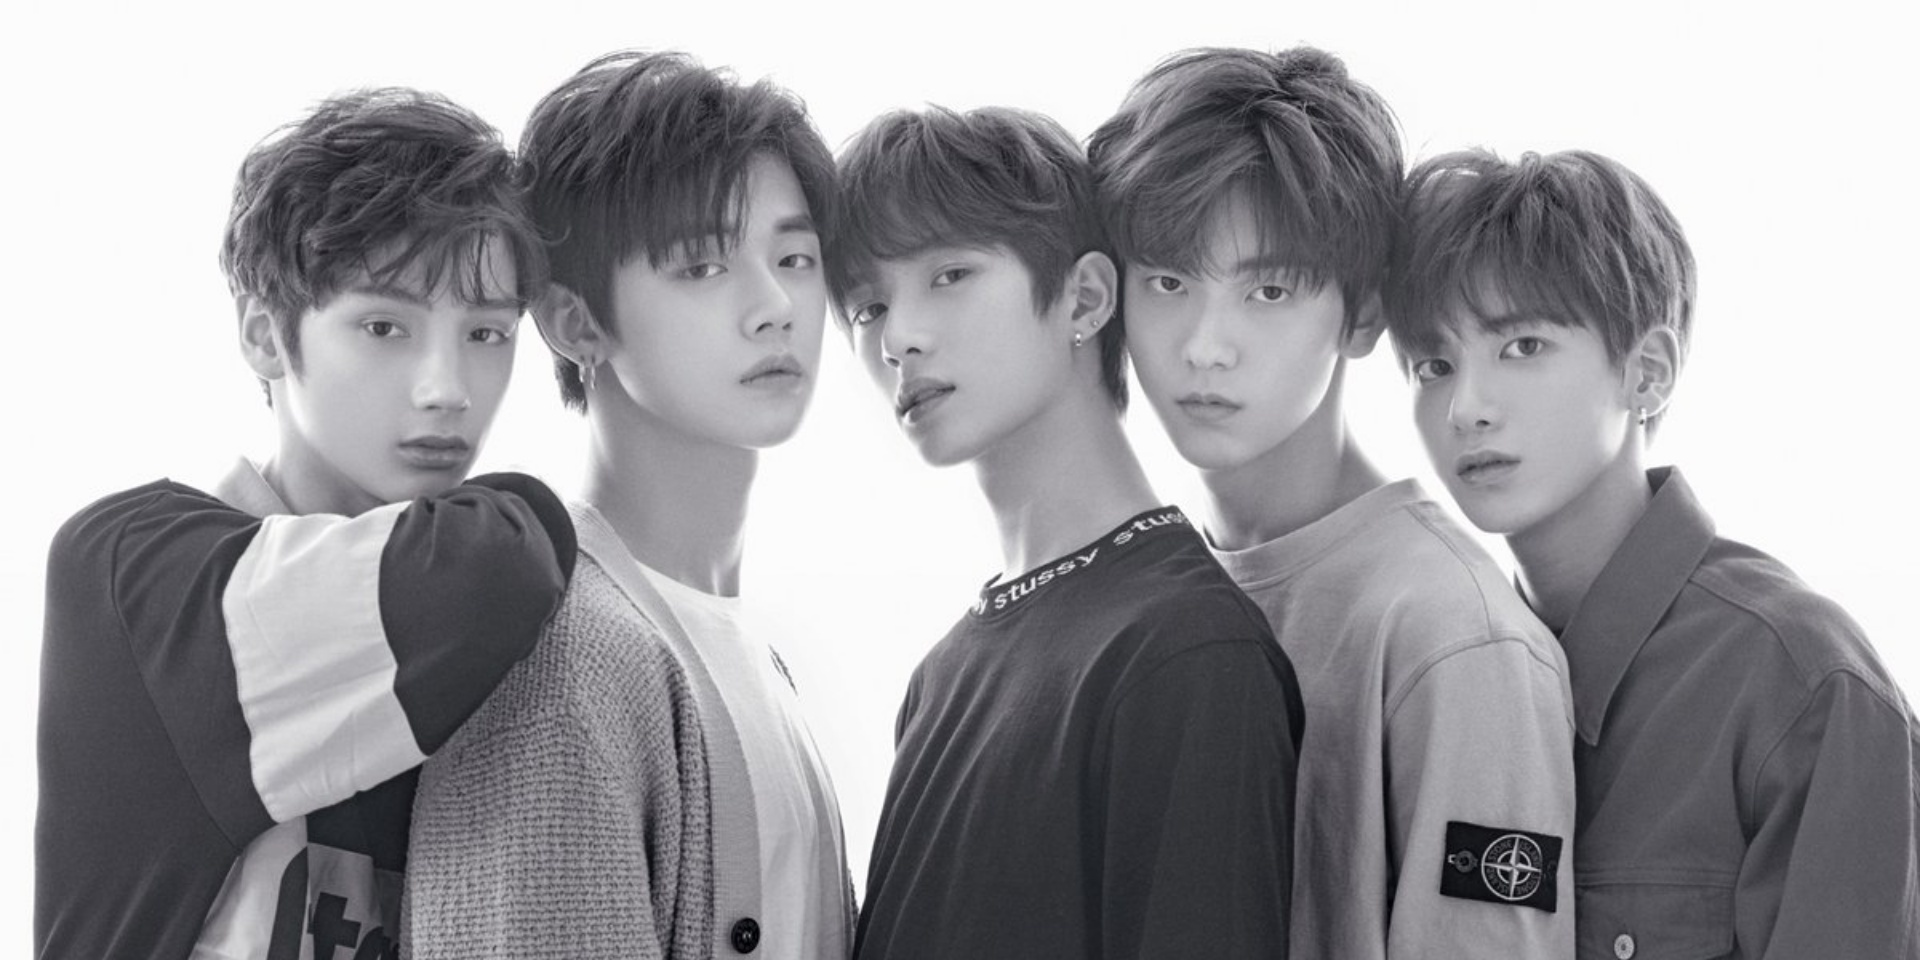 Big Hit Entertainment reveals full lineup for new boyband TXT